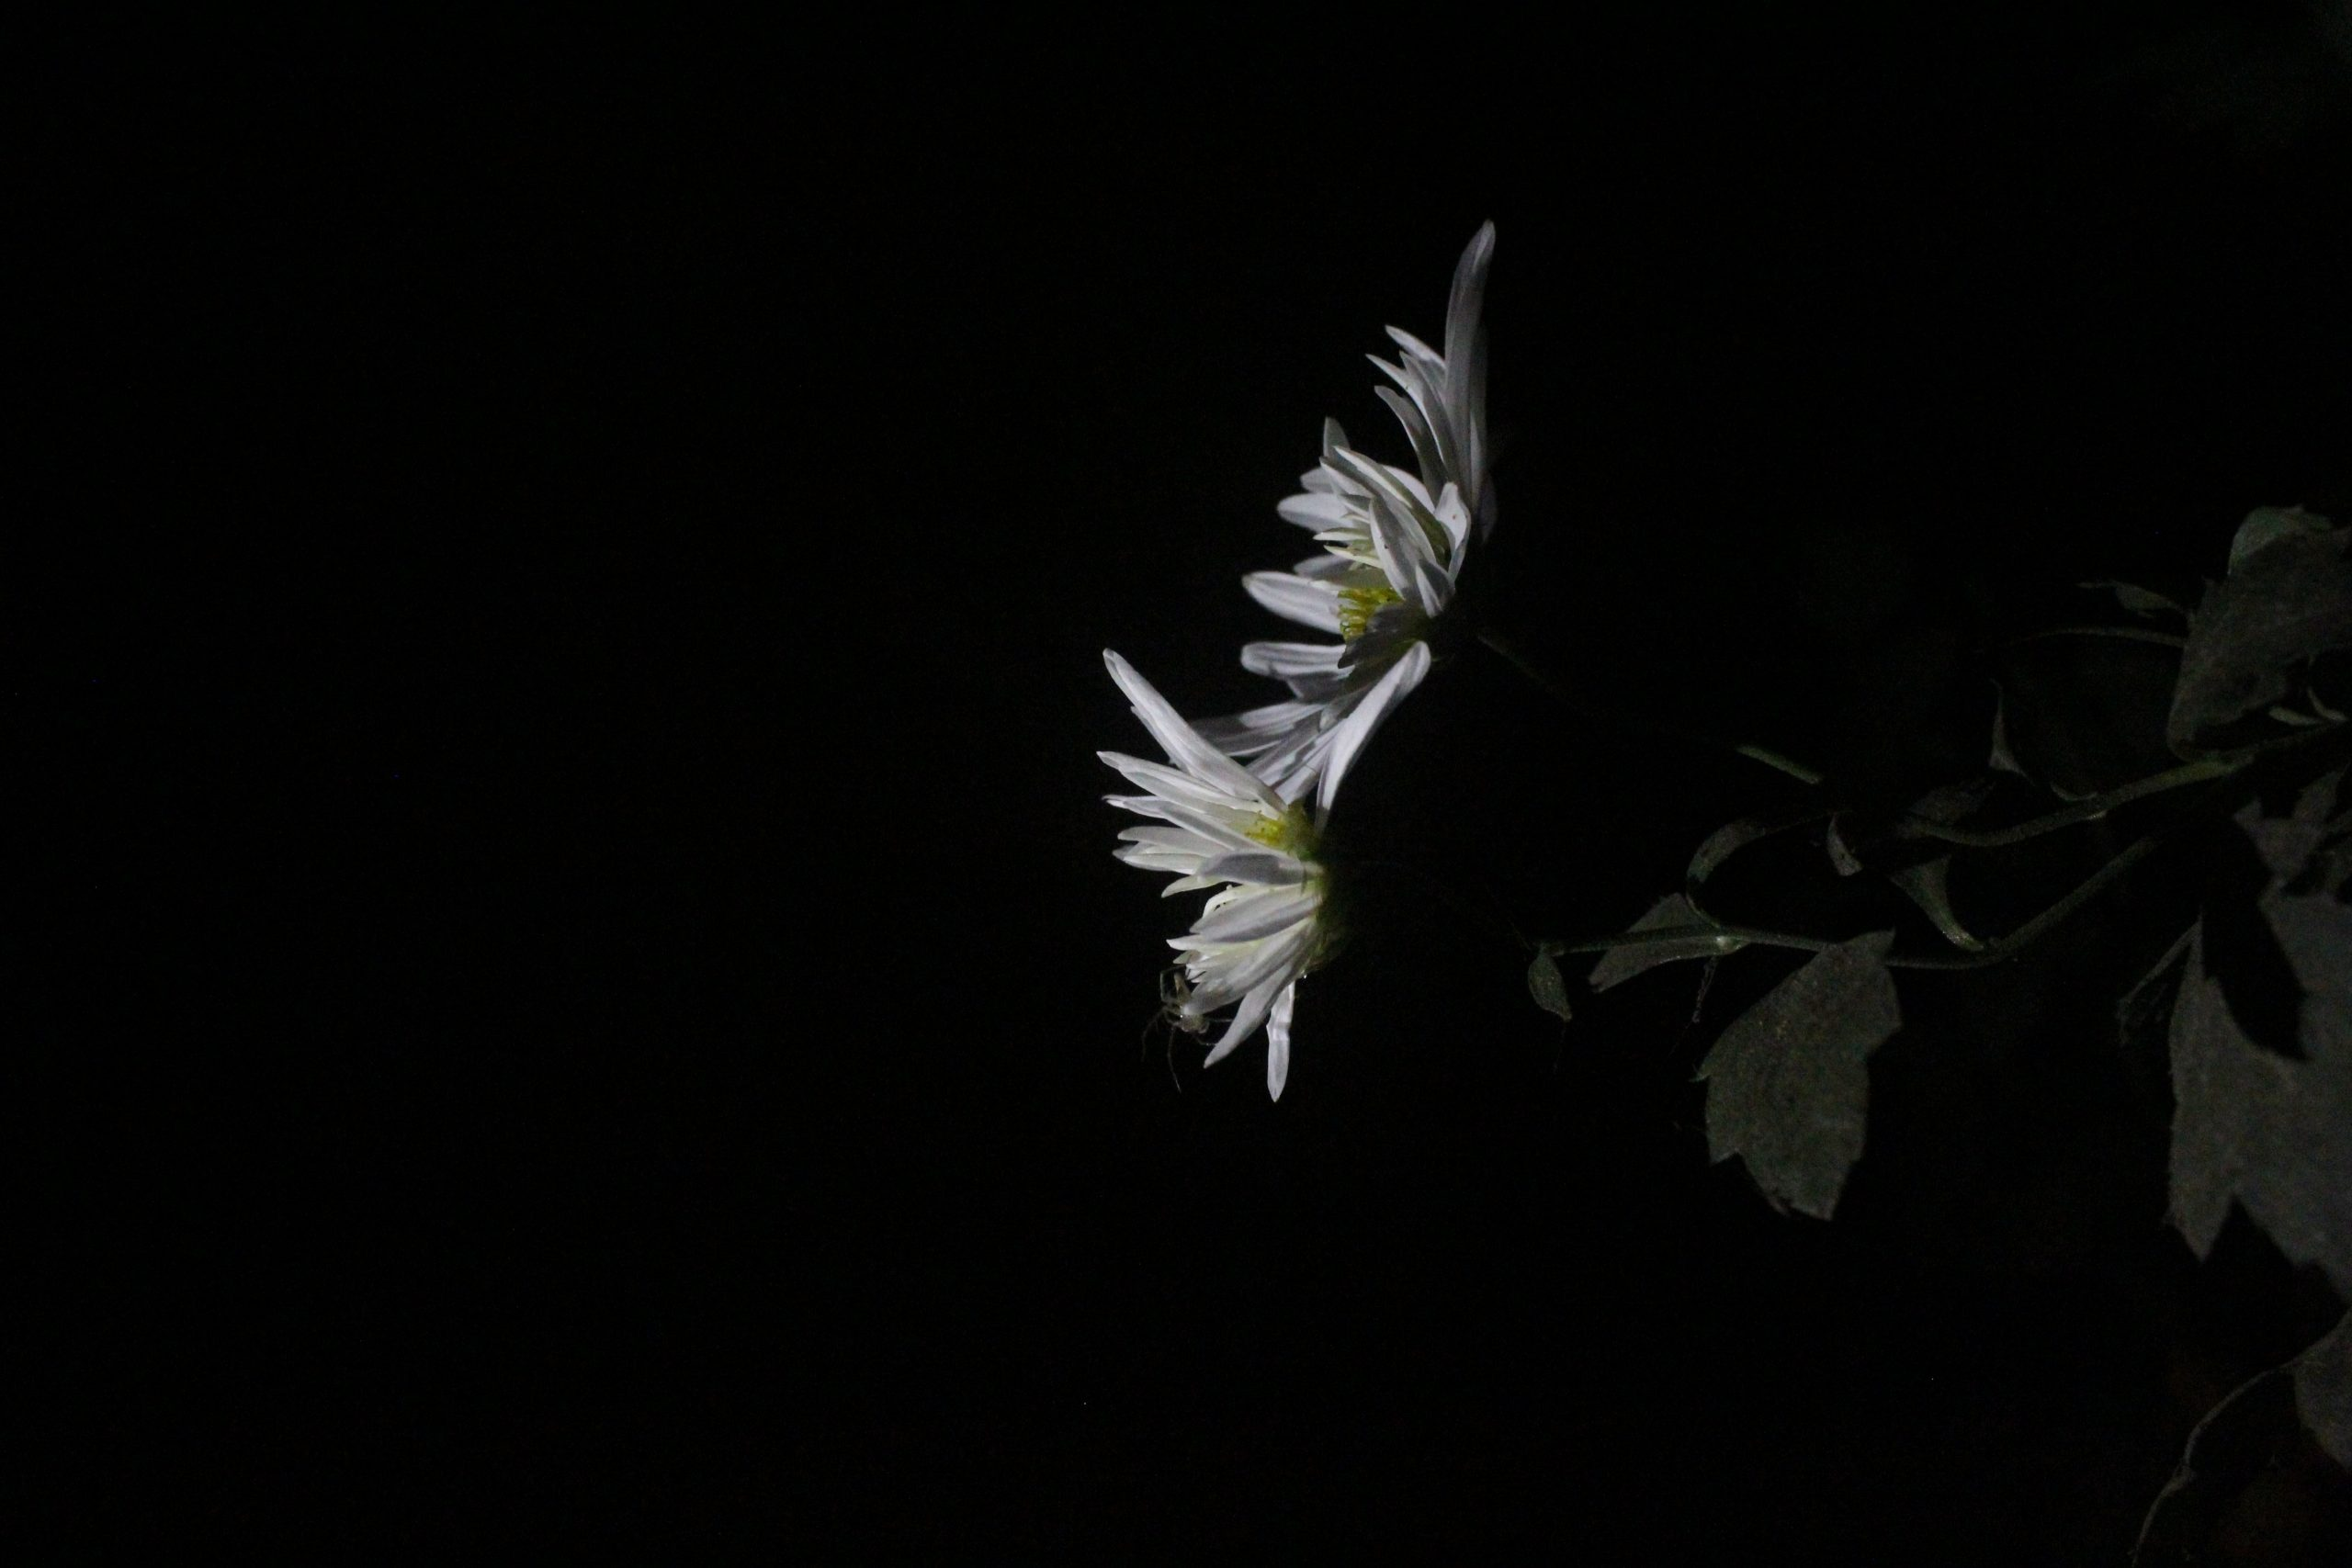 Flower portrait in dark